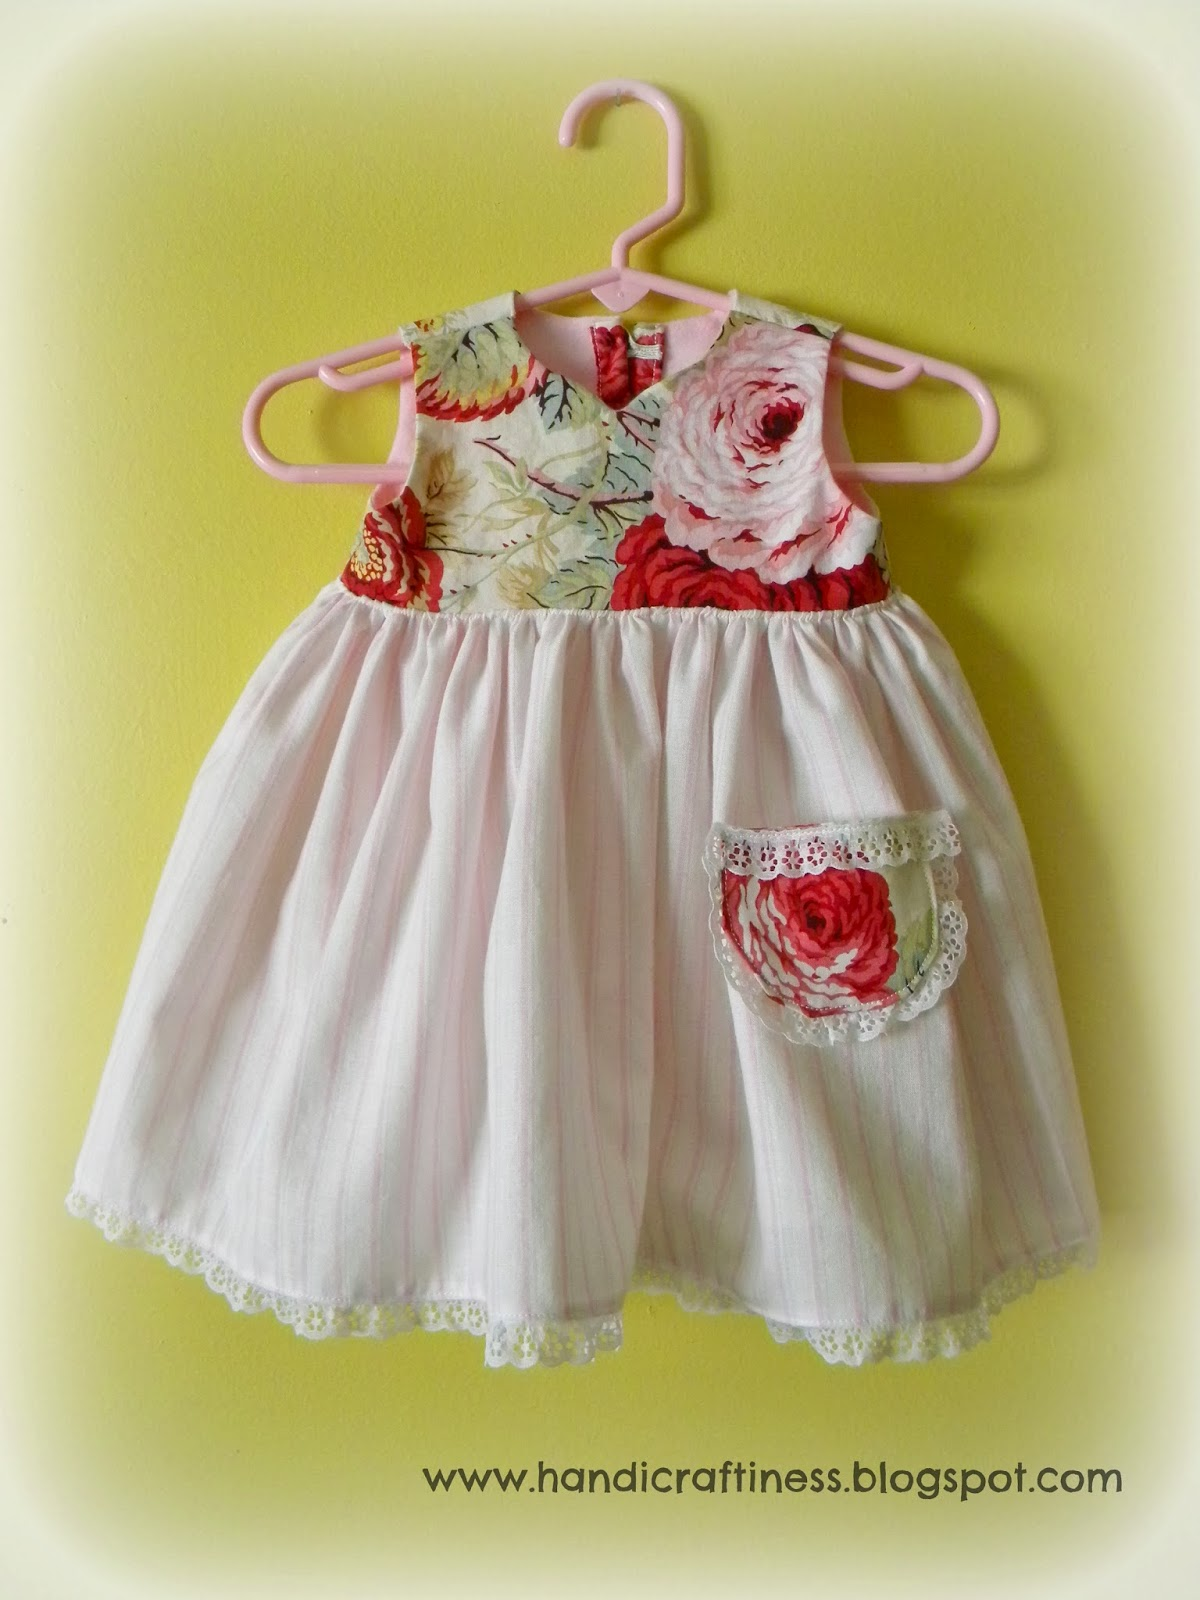 The Pretty Kitty Studio Spring Baby Dresses for a New Baby